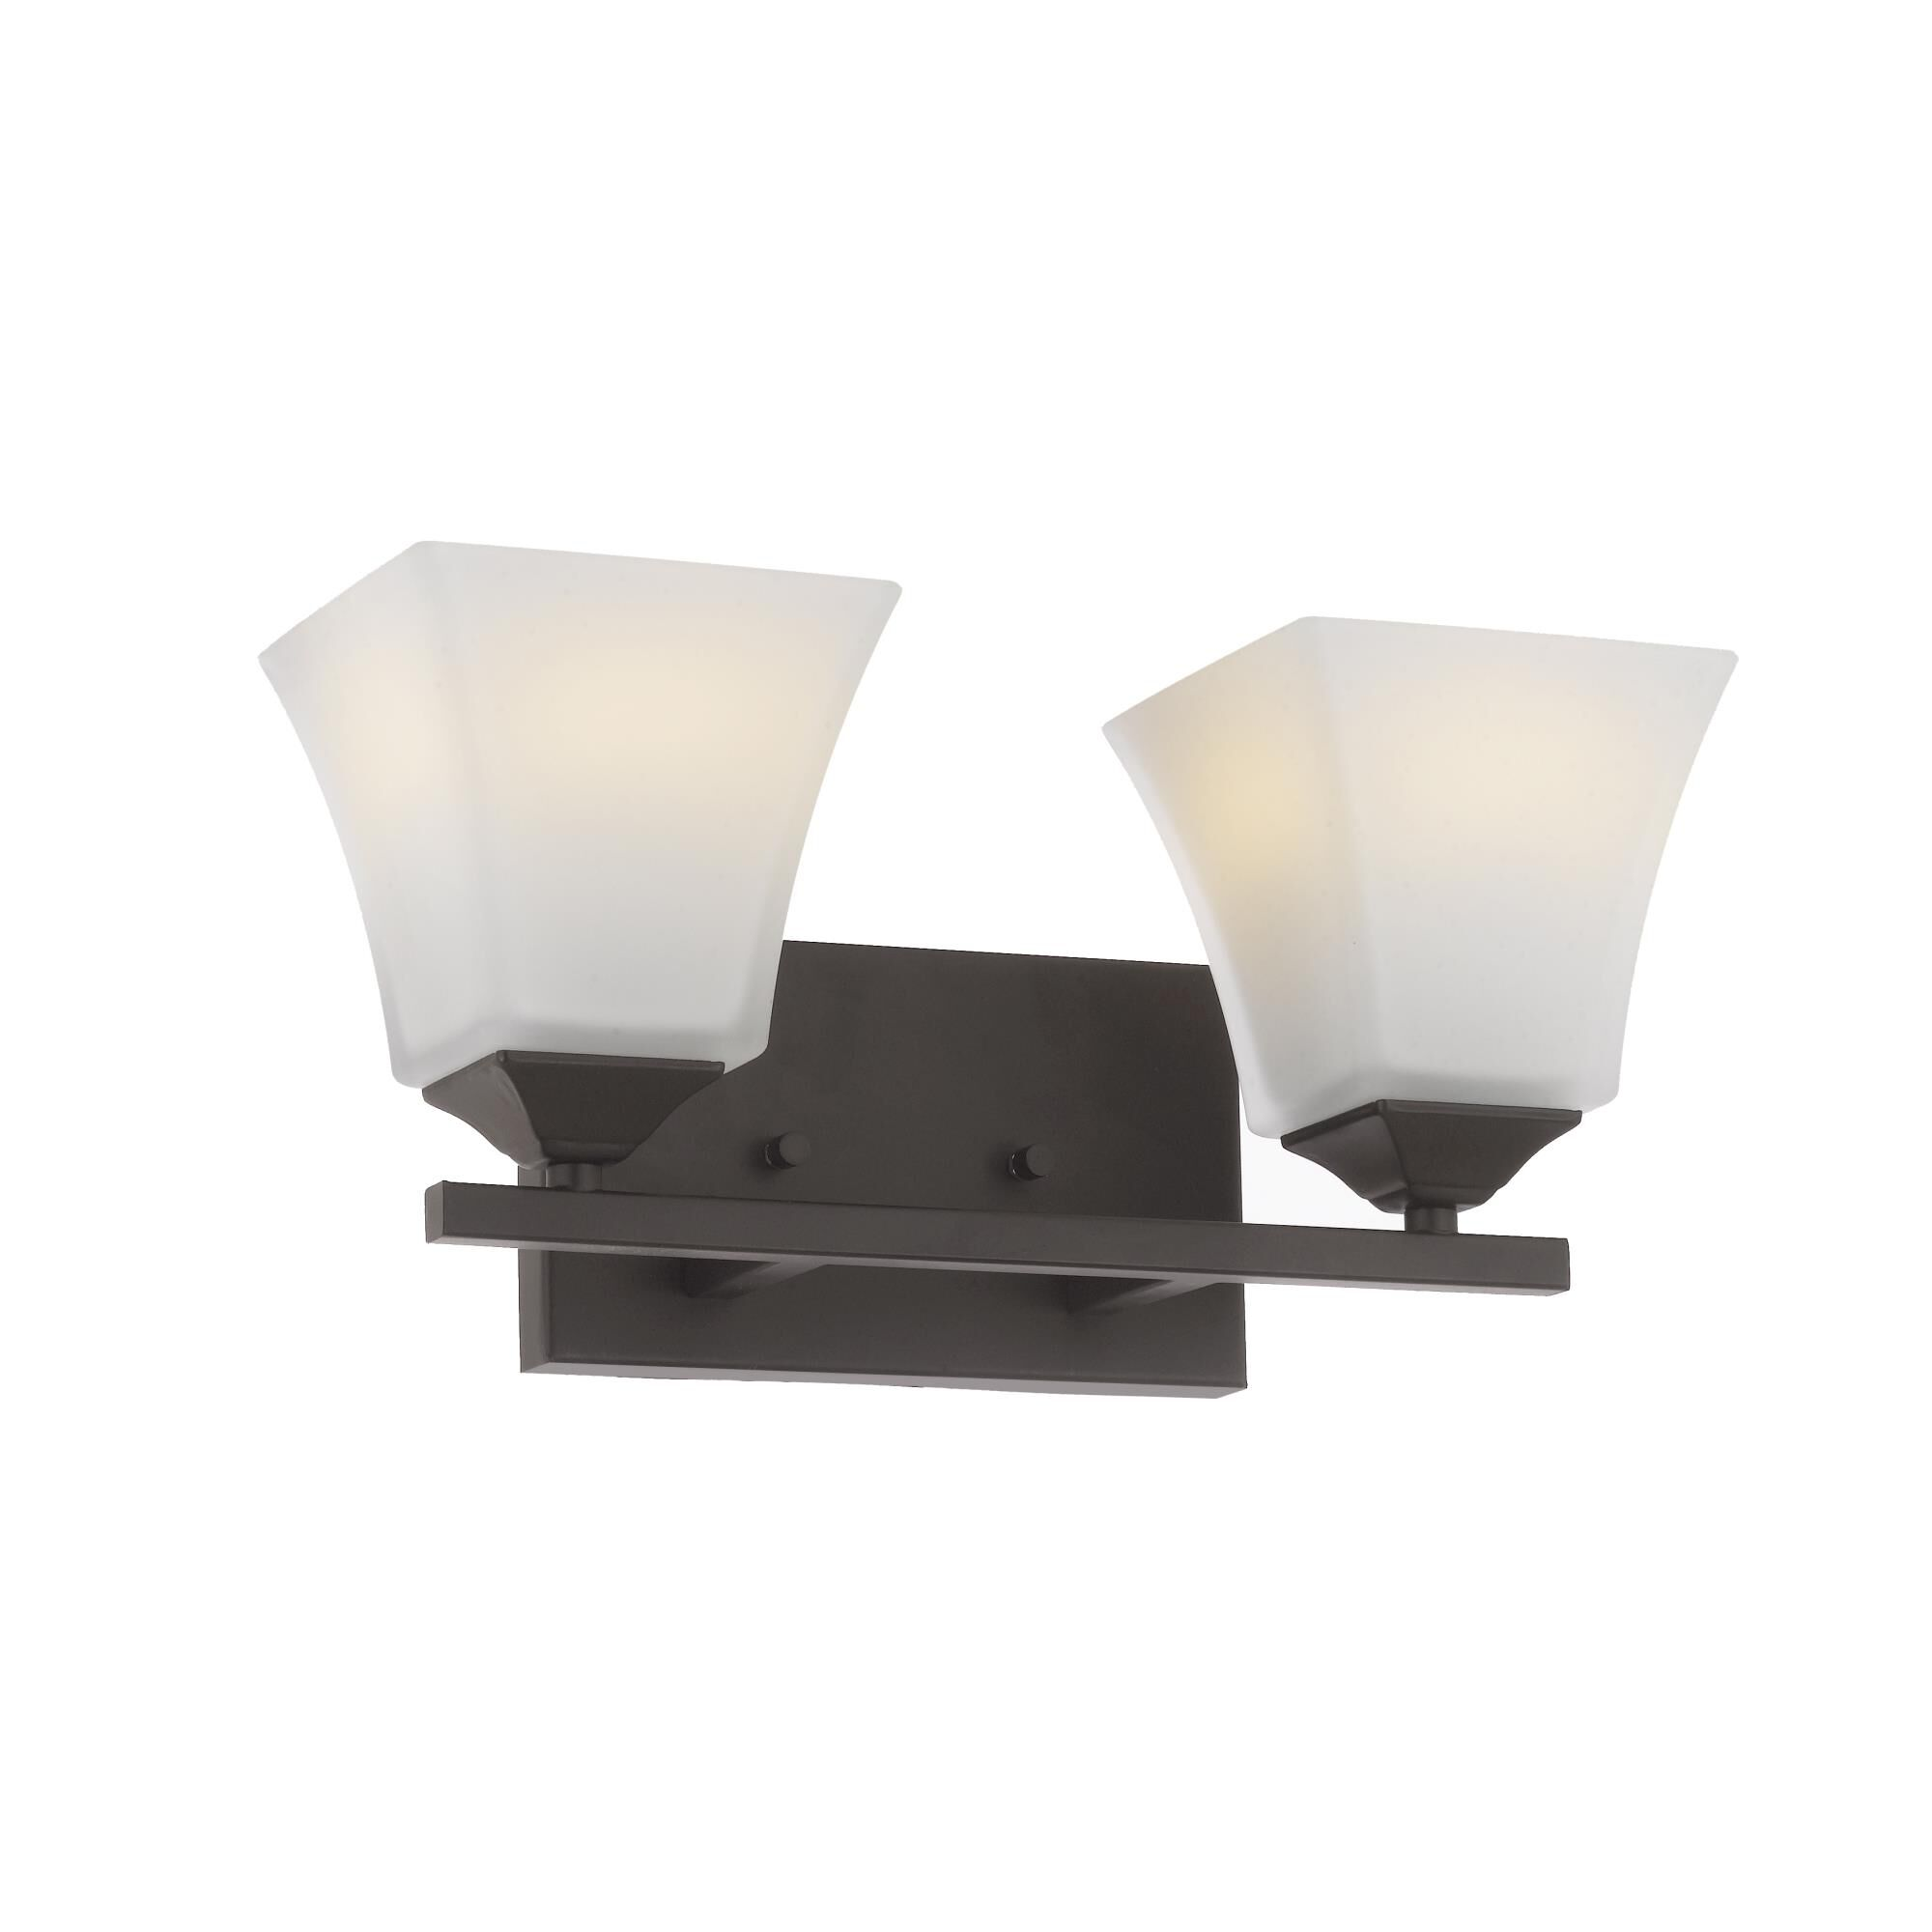 Batalion Hillair 14 Inch Wall Sconce Hillair - P1580wb2orb - Transitional Wall Sconce